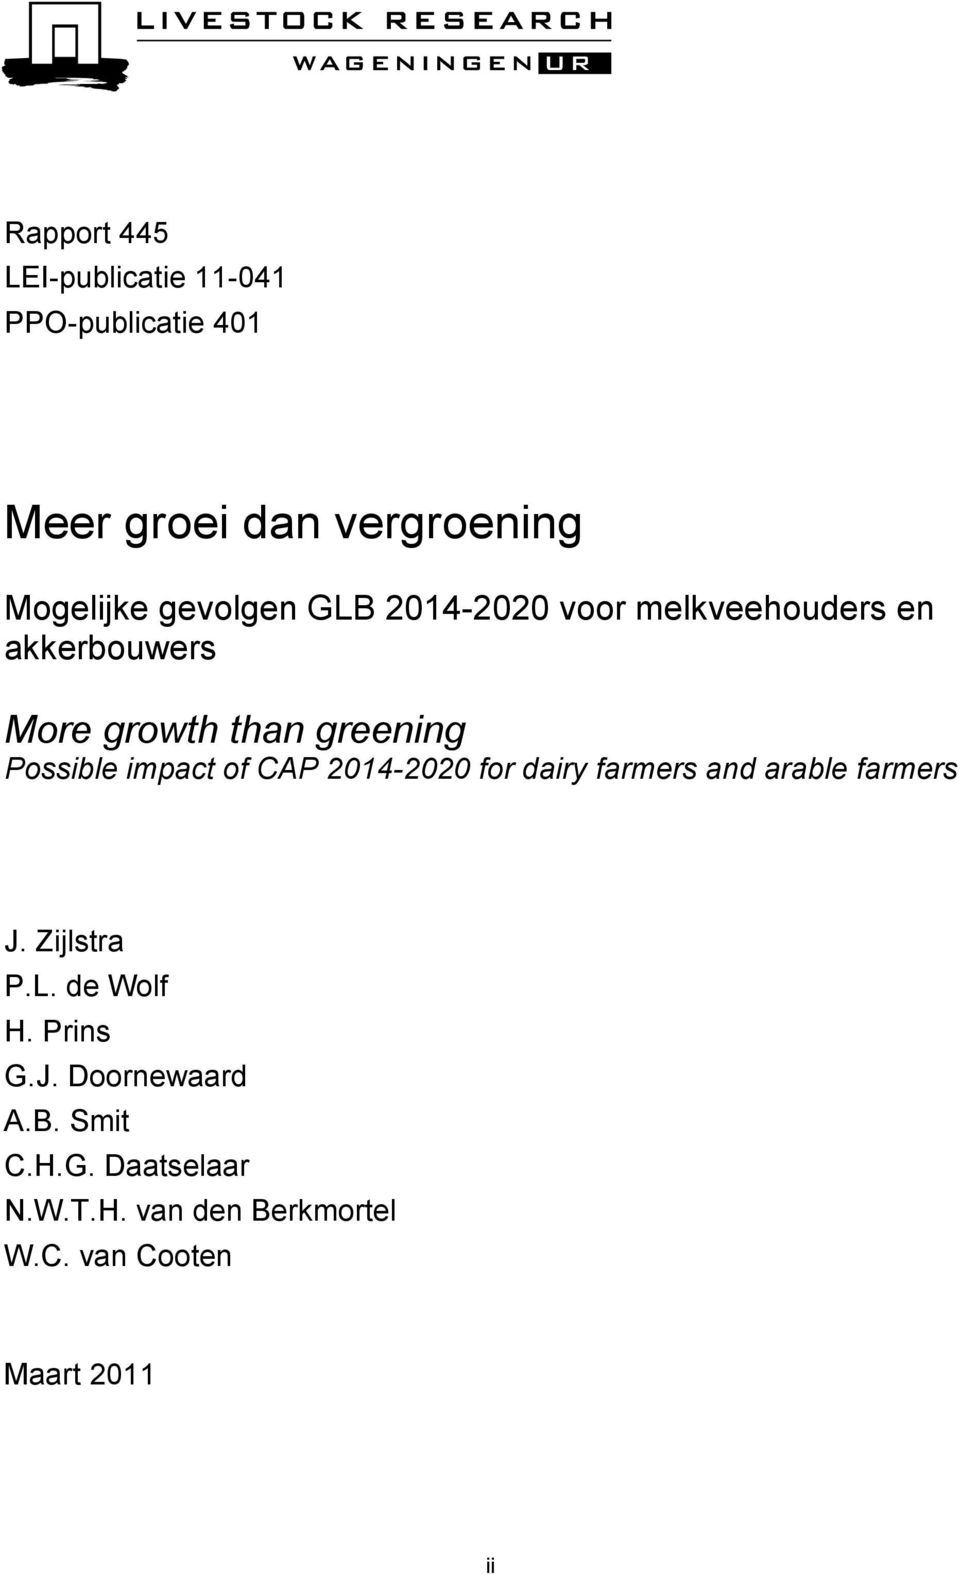 CAP 2014-2020 for dairy farmers and arable farmers J. Zijlstra P.L. de Wolf H. Prins G.J. Doornewaard A.